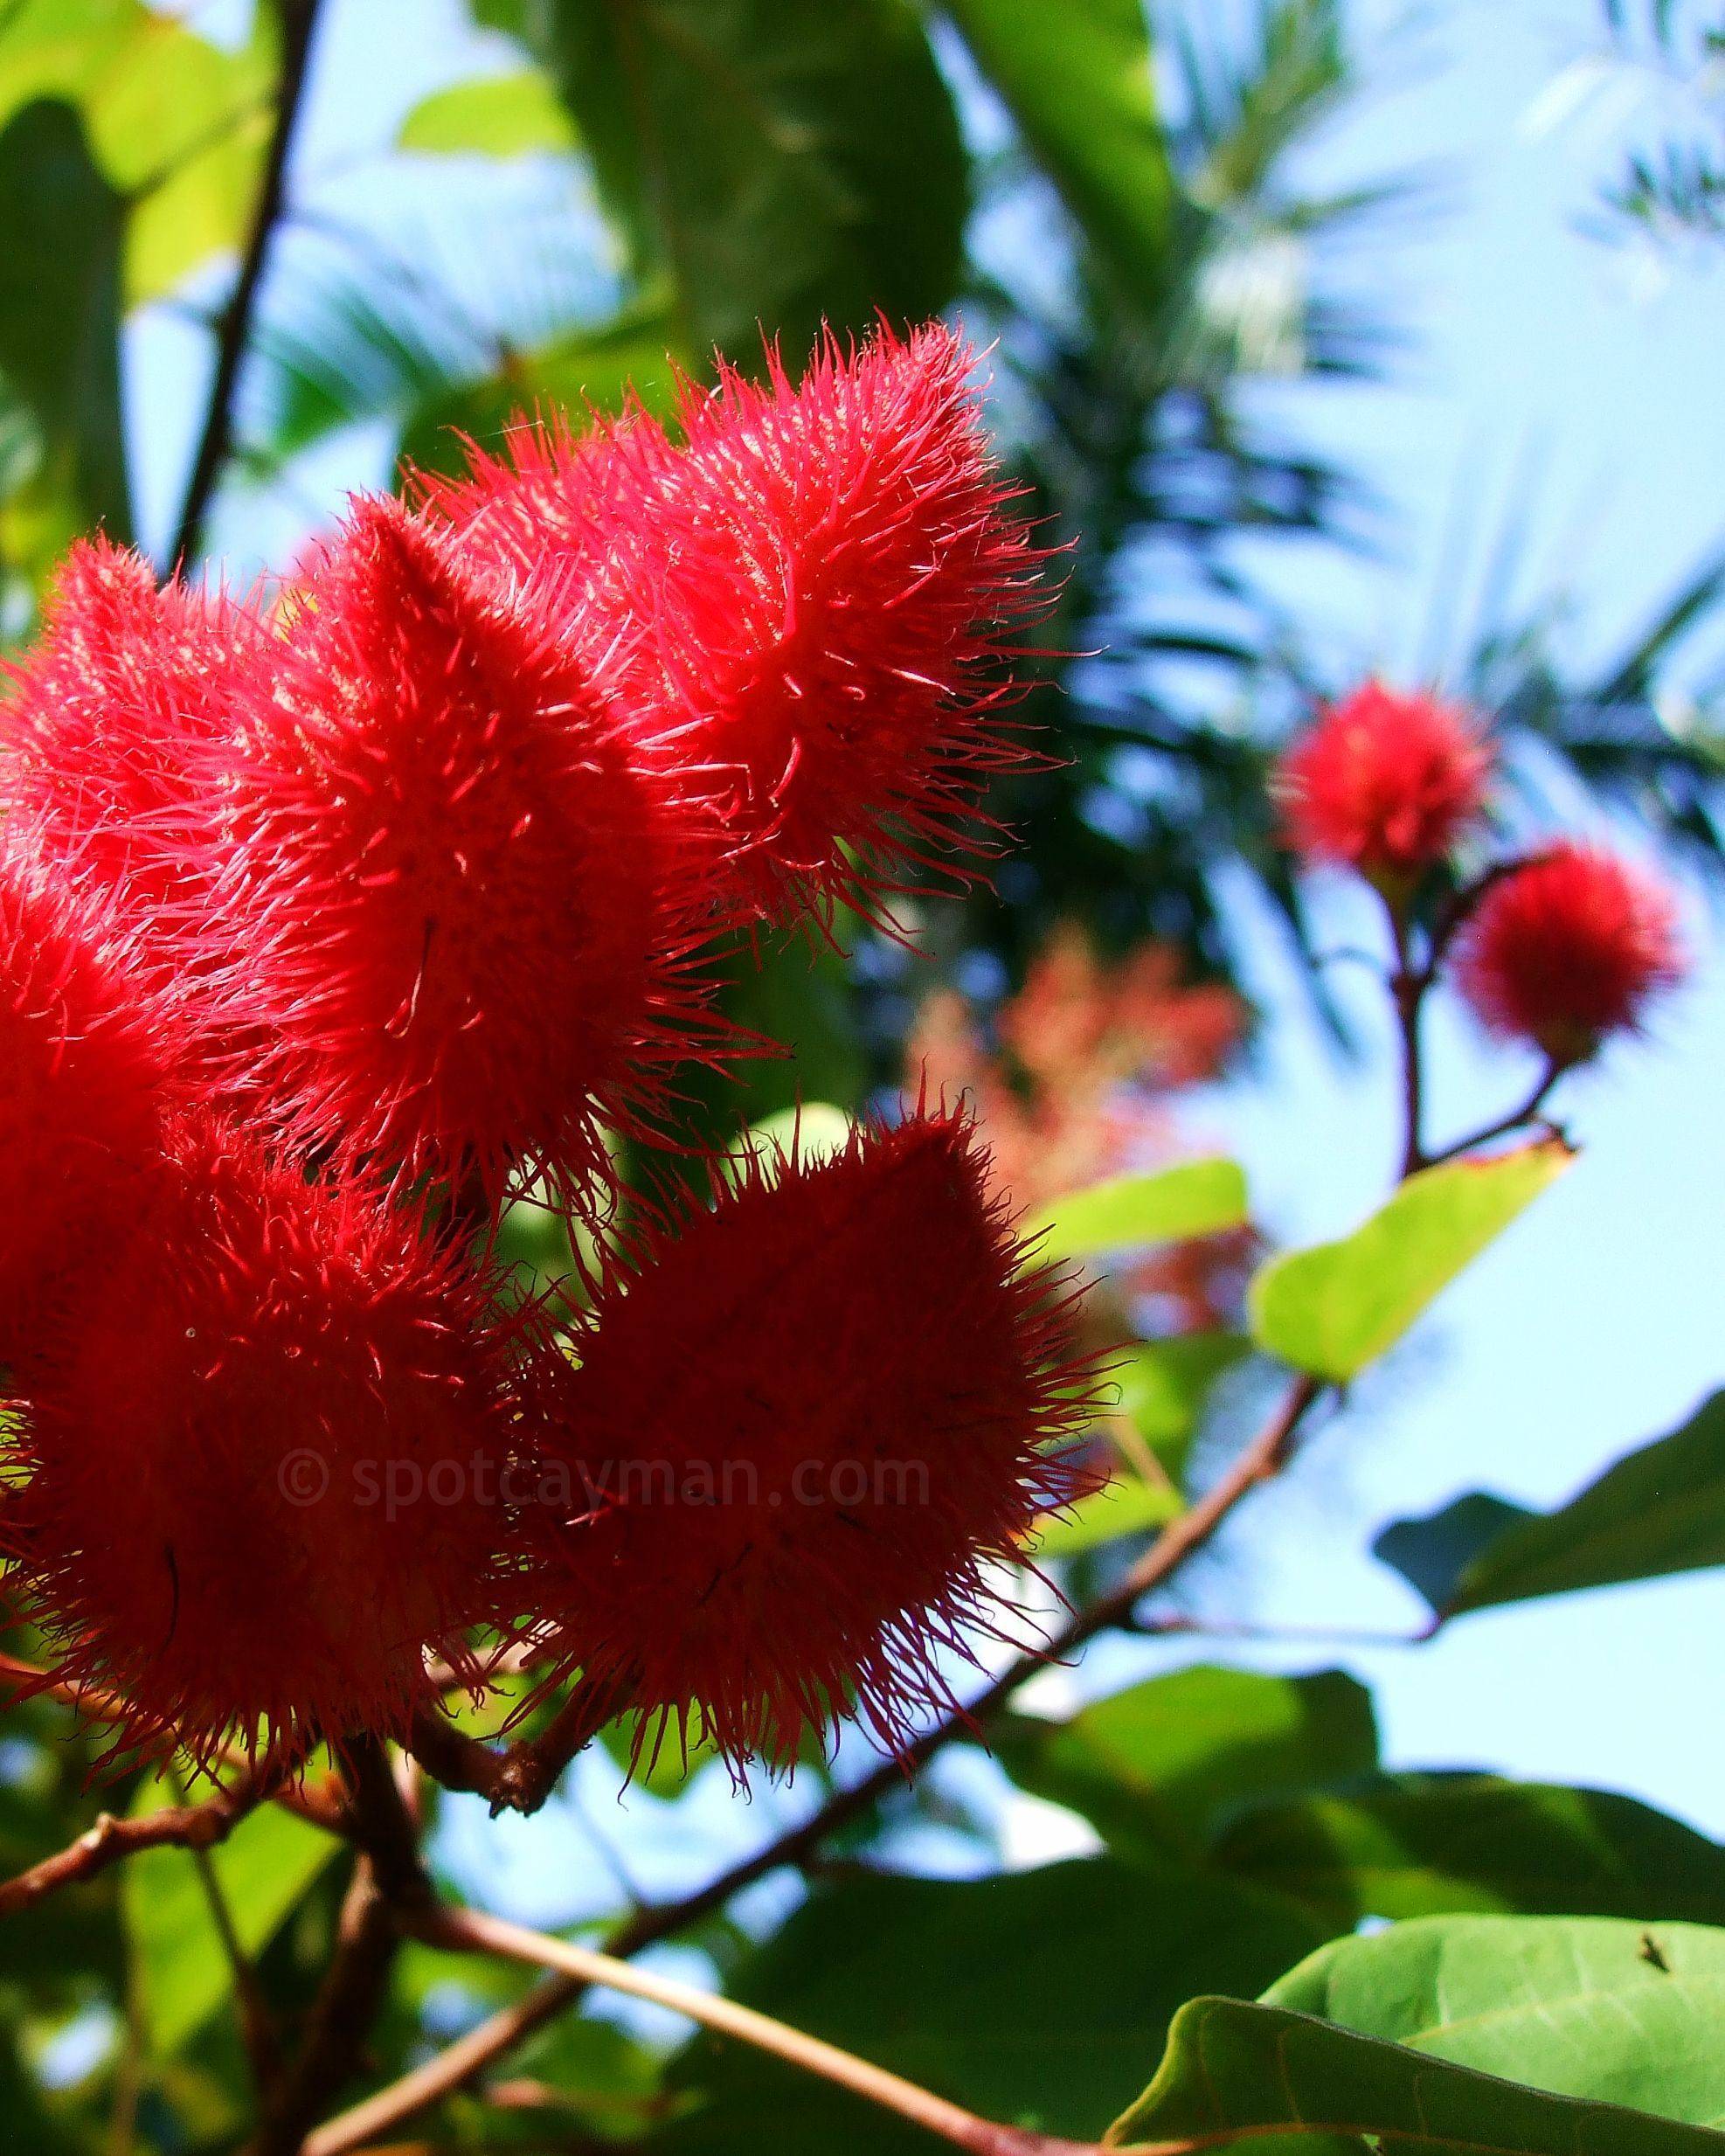 Annatto [Bixa orellana] at the Queen Elizabeth II Botanic Park in Cayman Island